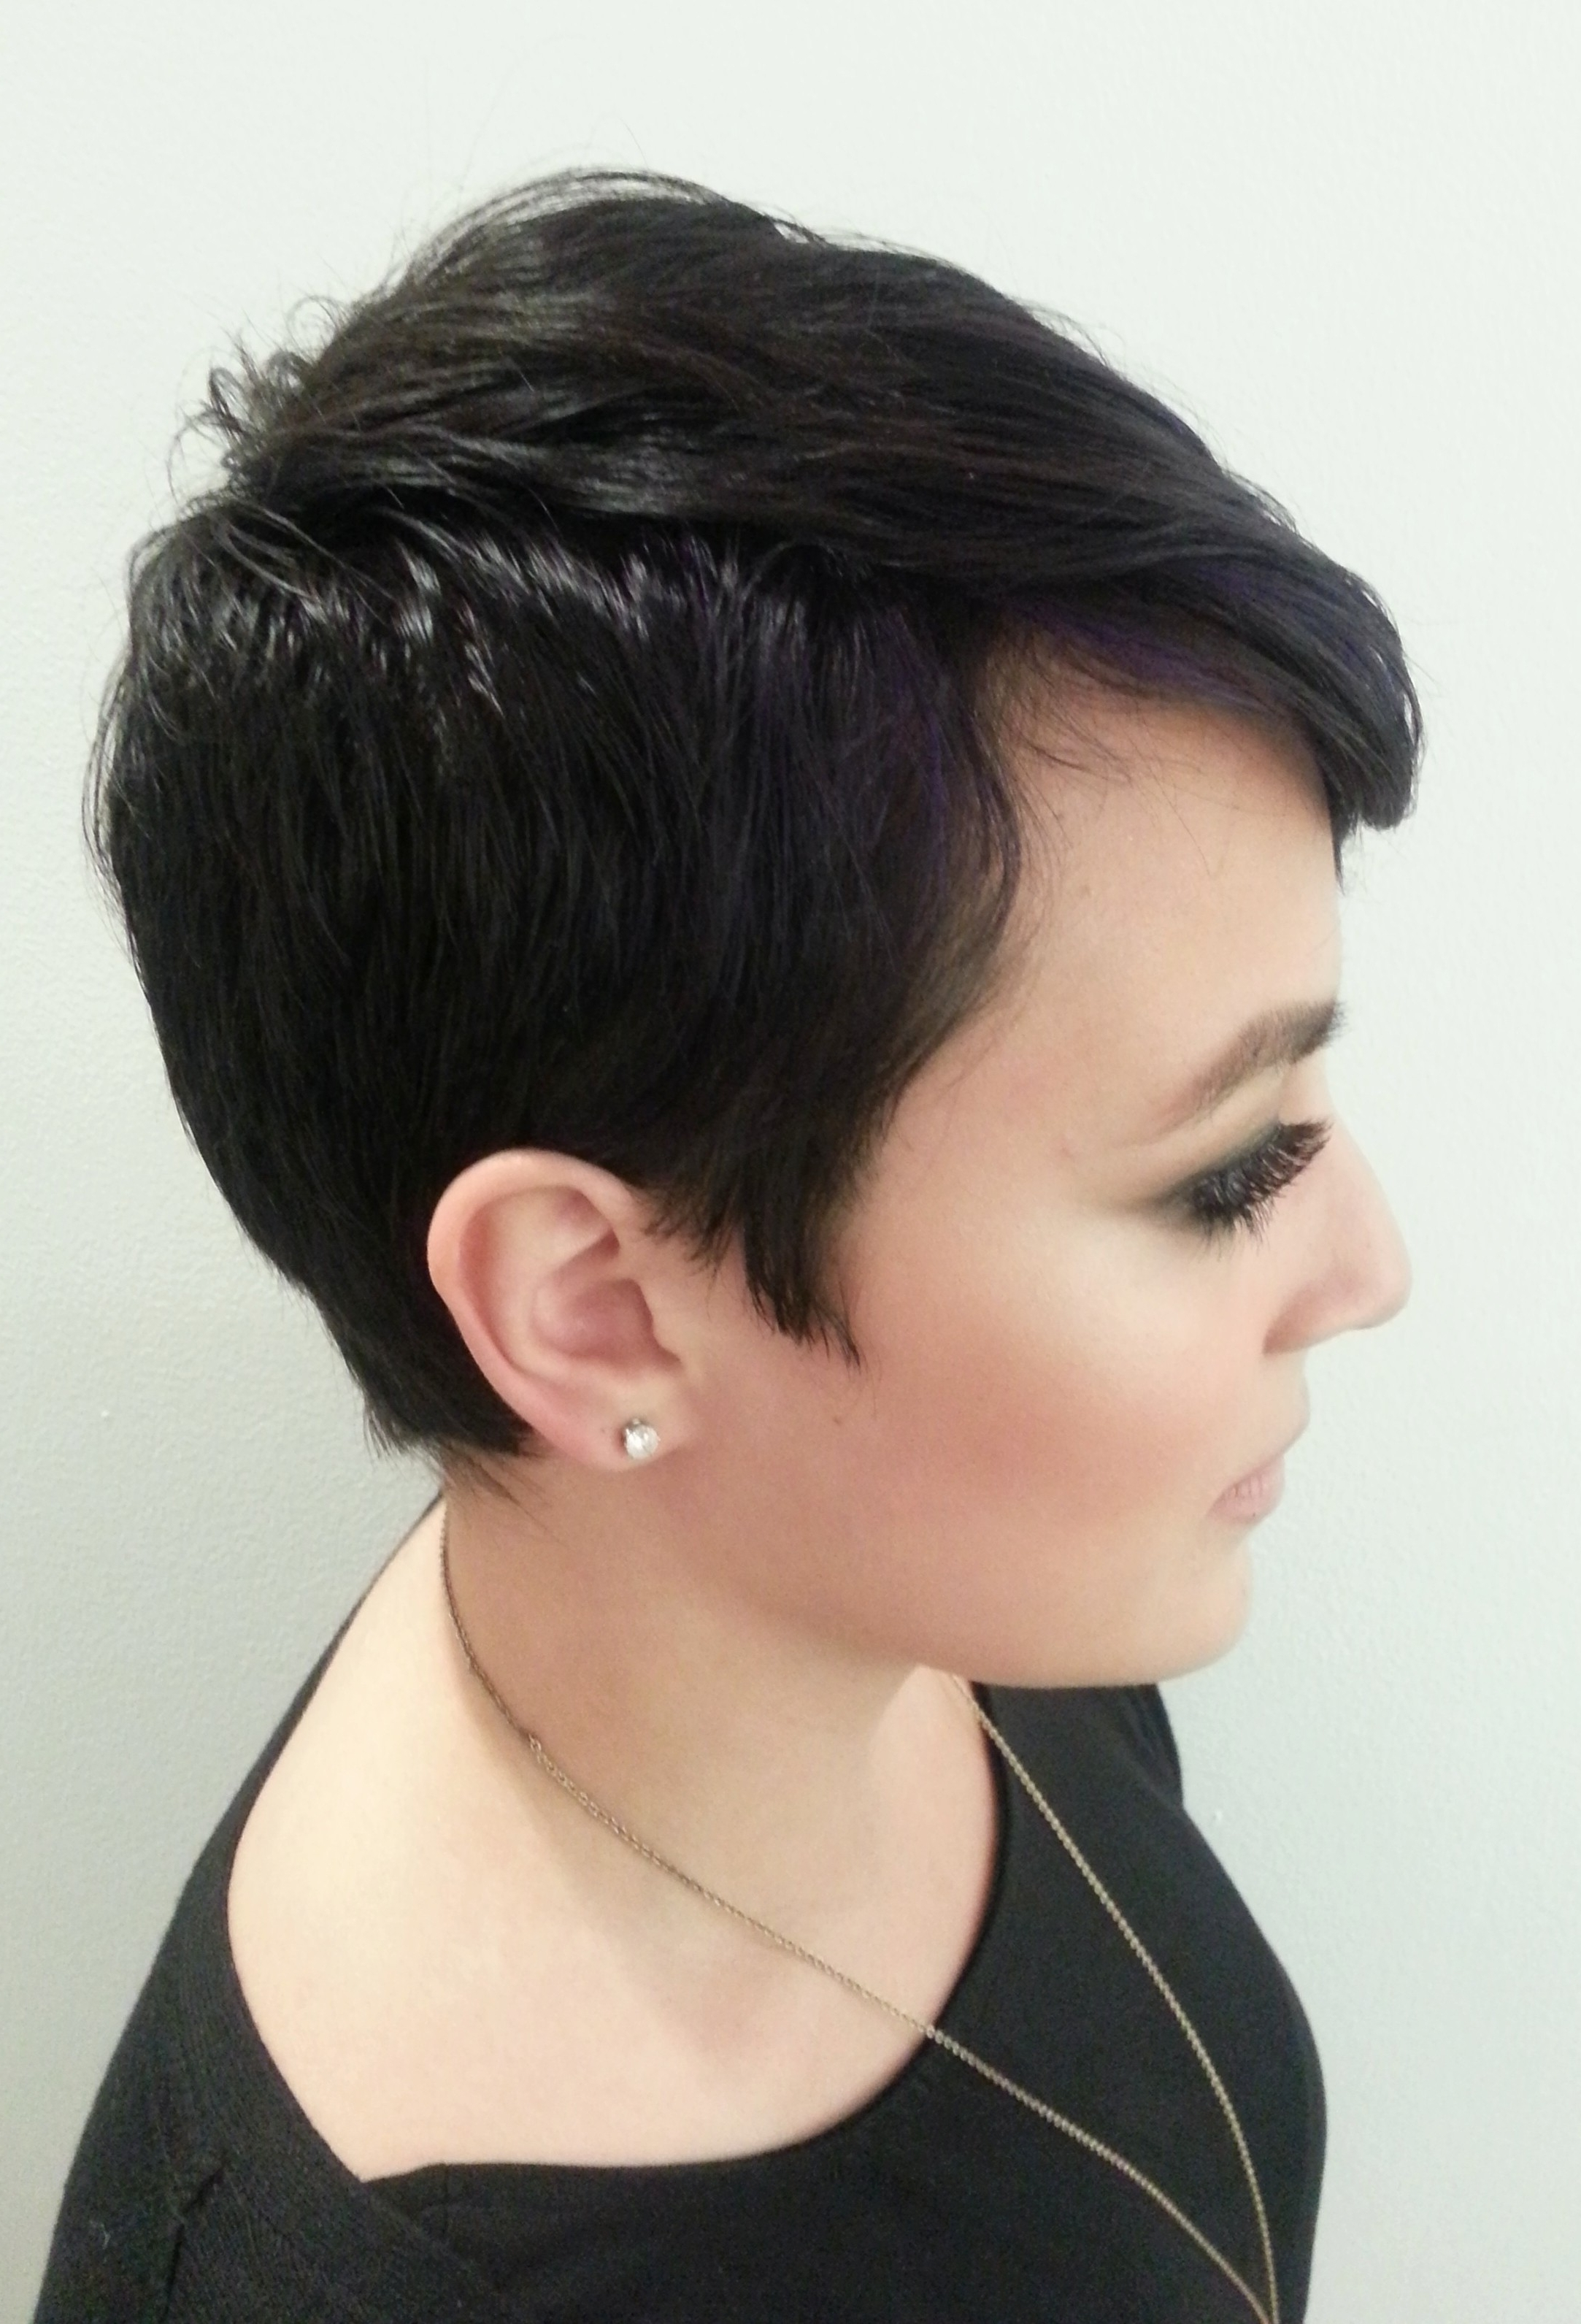 Pixie Haircut For Thick Curly Hair Short Hairstyles Thick Hair Regarding Most Recently Pixie Hairstyles For Thick Curly Hair (View 10 of 15)